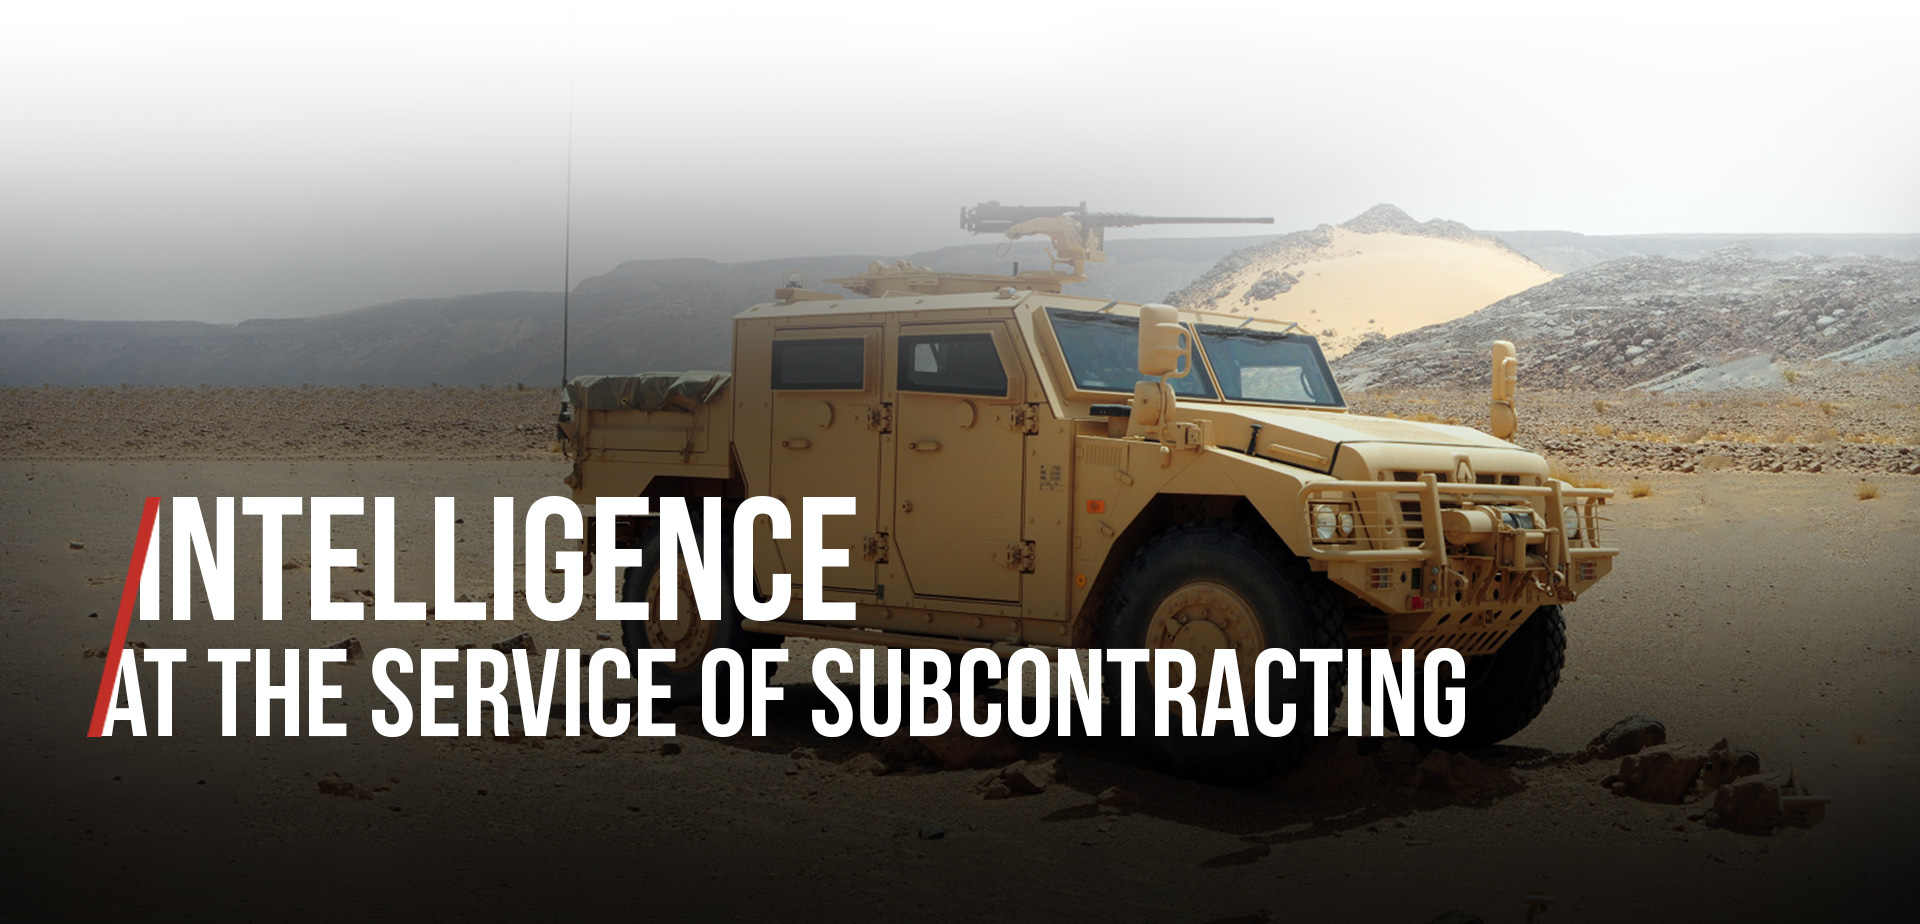 Intelligence at the service of subcontracting mobile